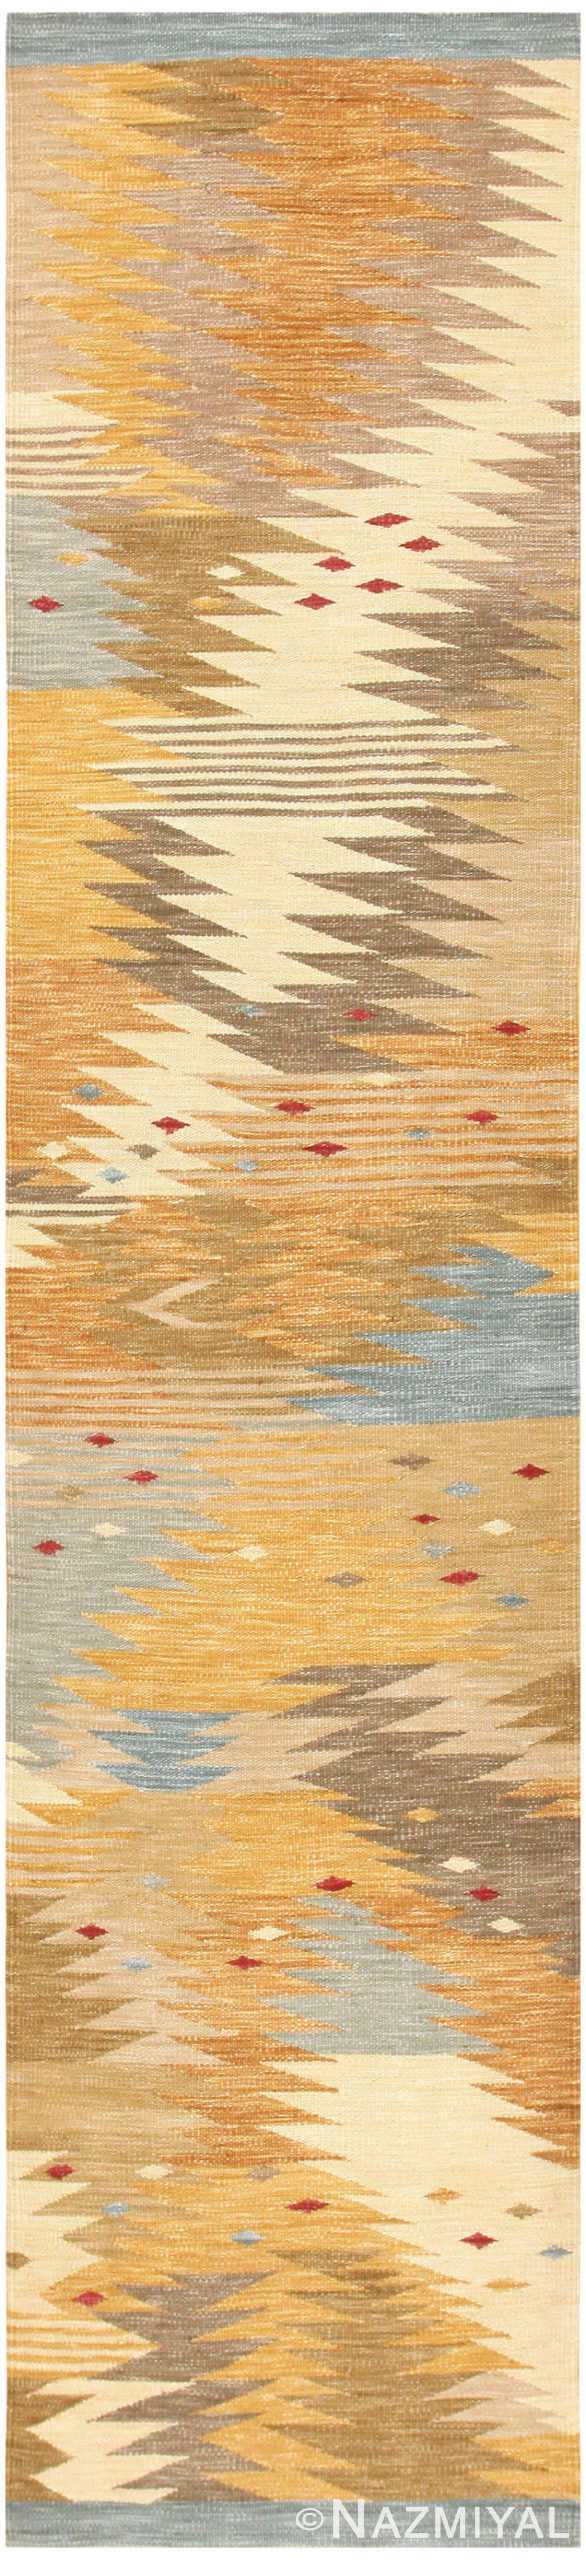 Vintage Swedish Inspired Modern Kilim Runner Rug 48518 by Namziyal